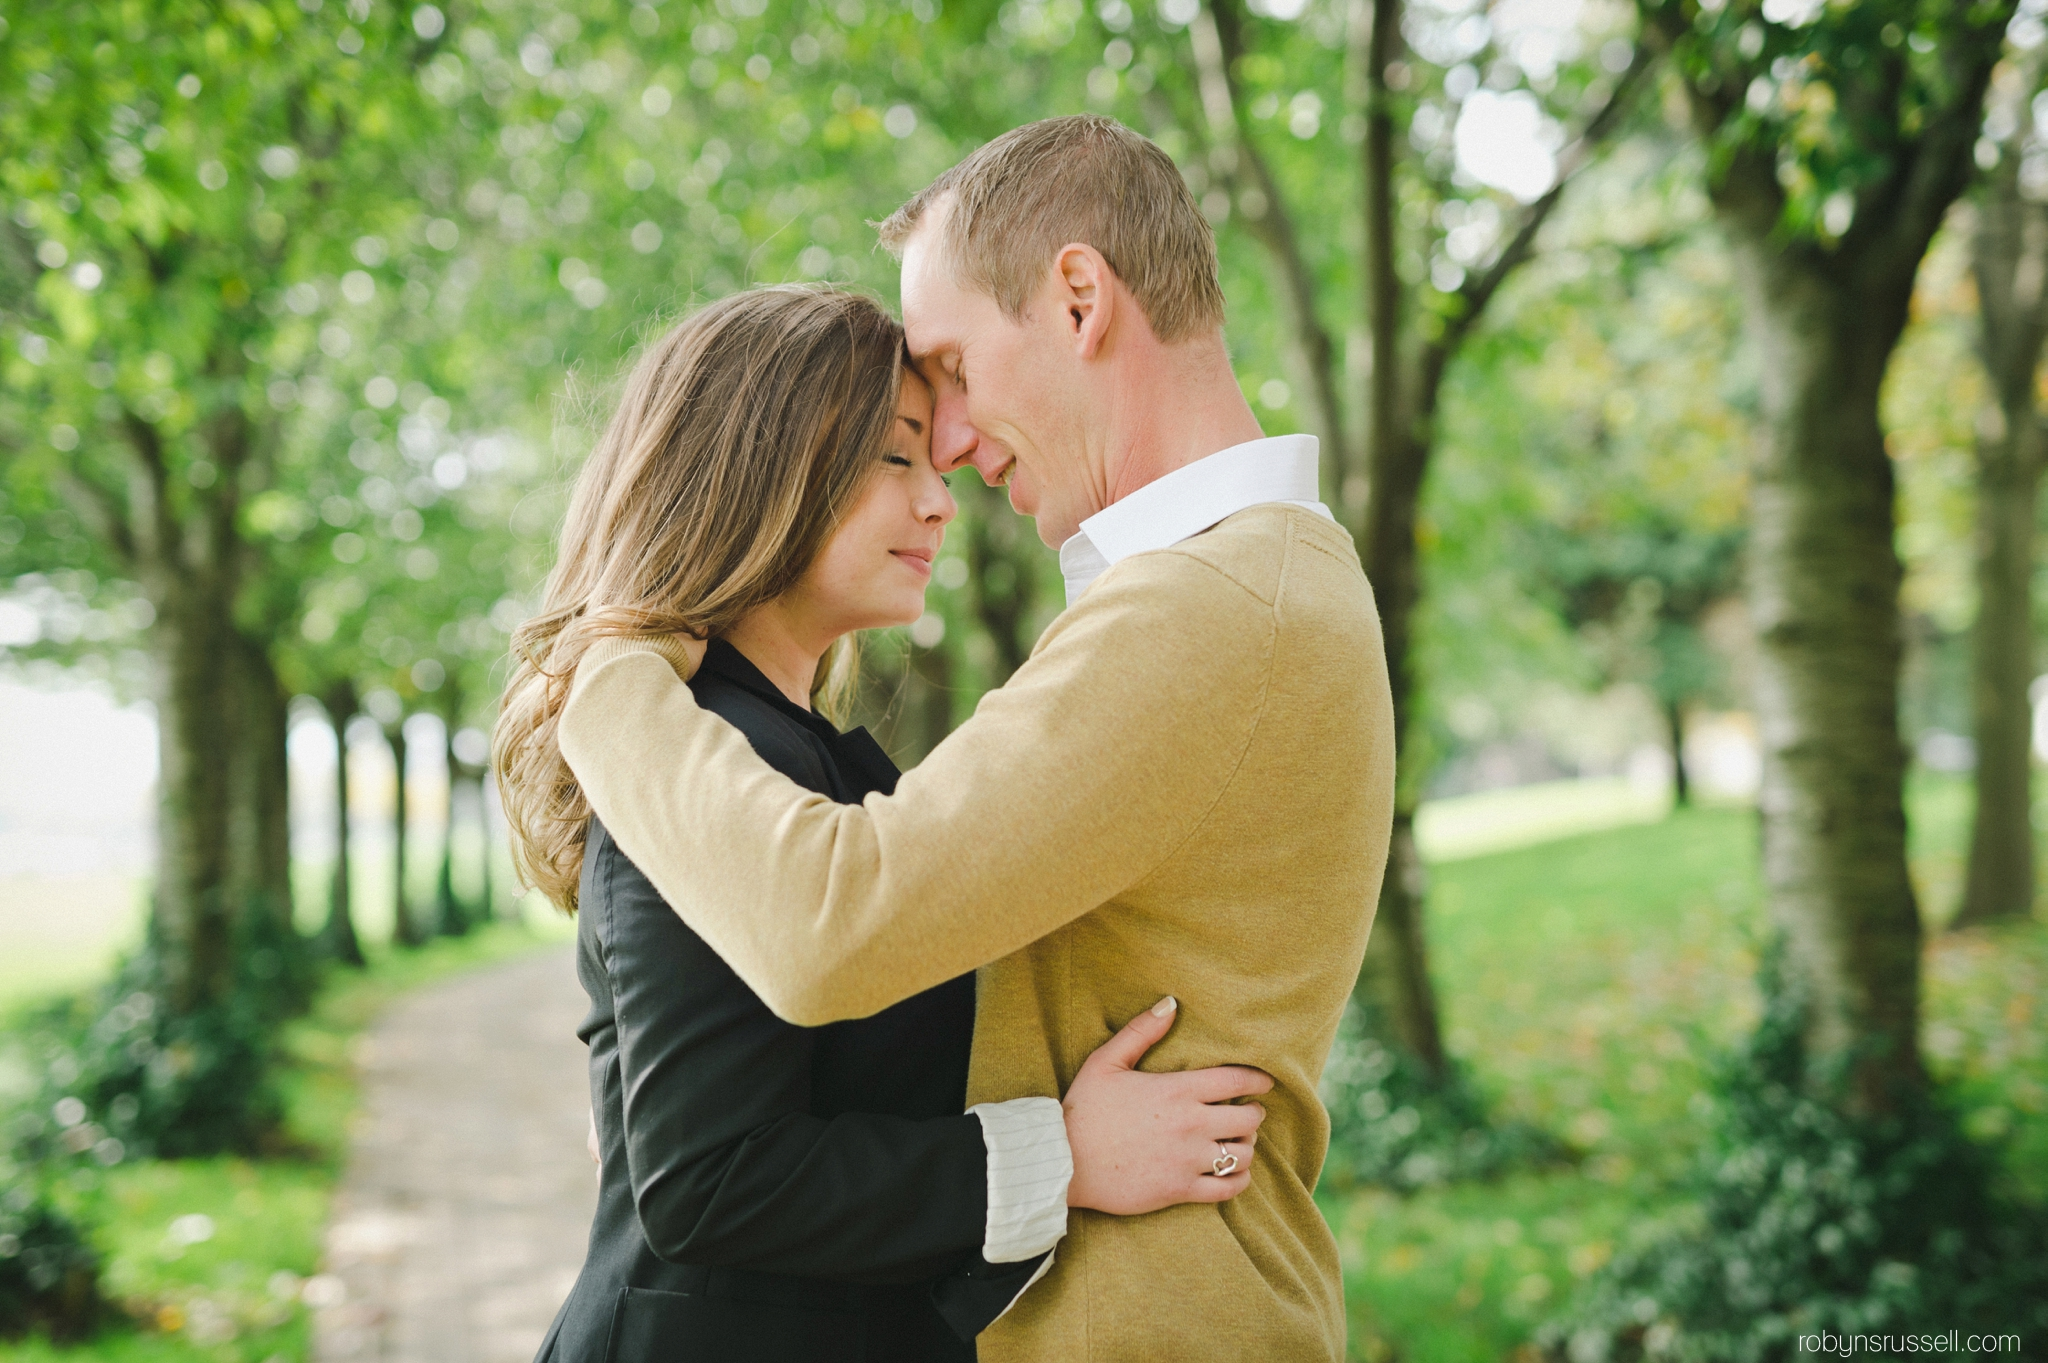 10-couple-sharing-a-private-embrace-in-a-park.jpg